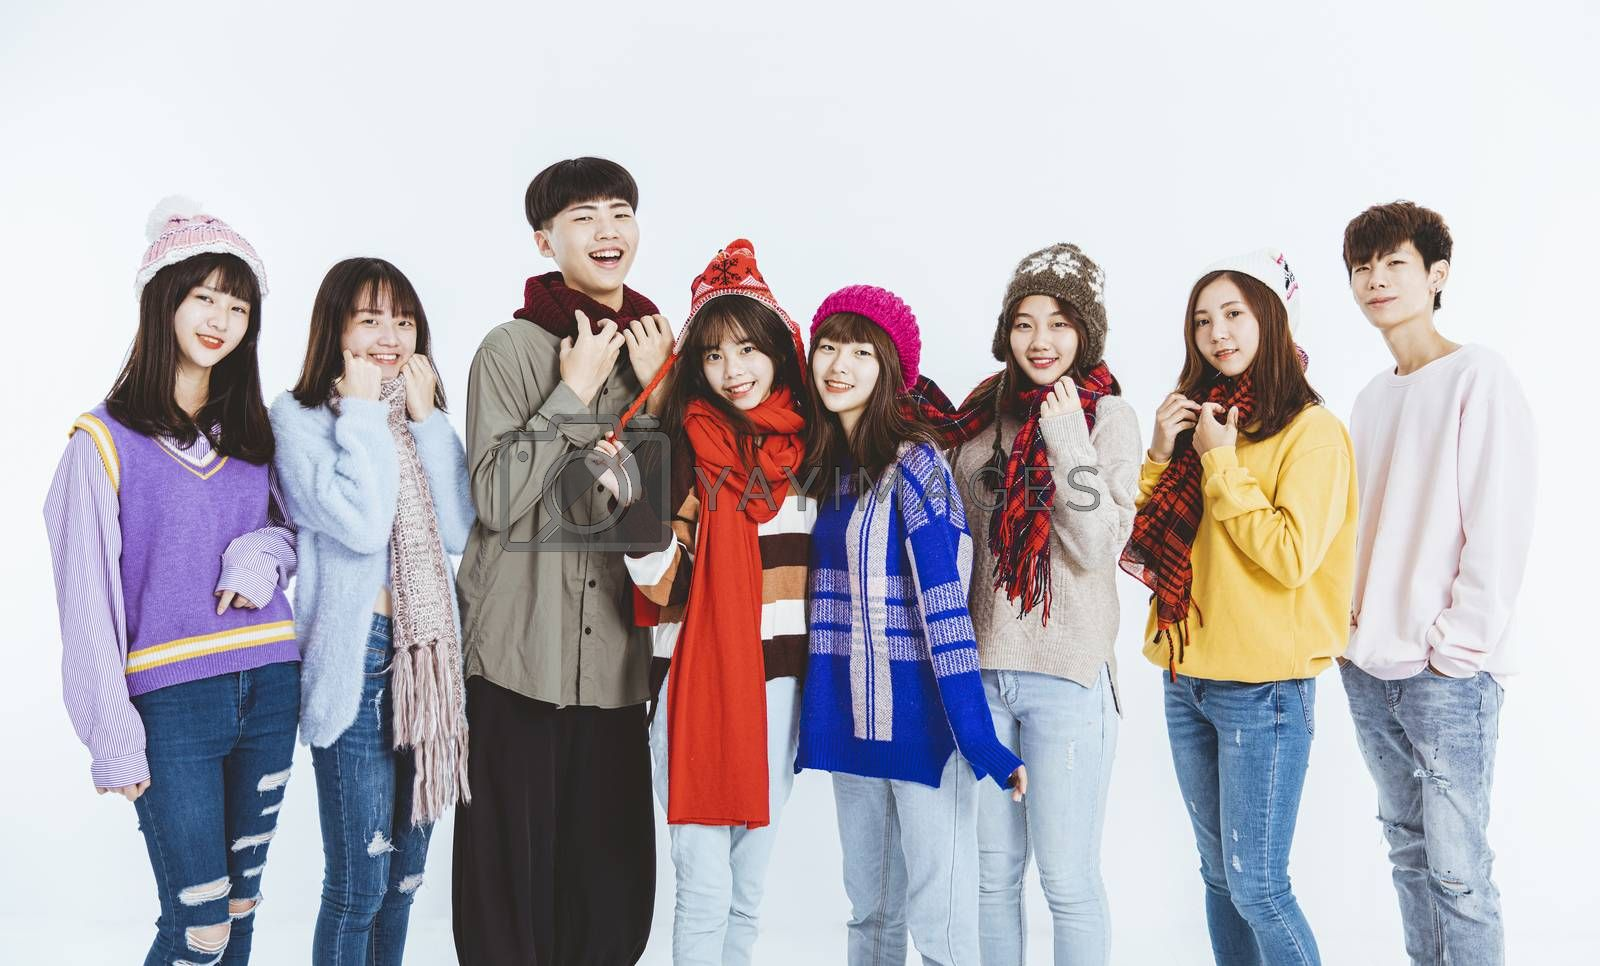 happy young people in winter clothes standing together